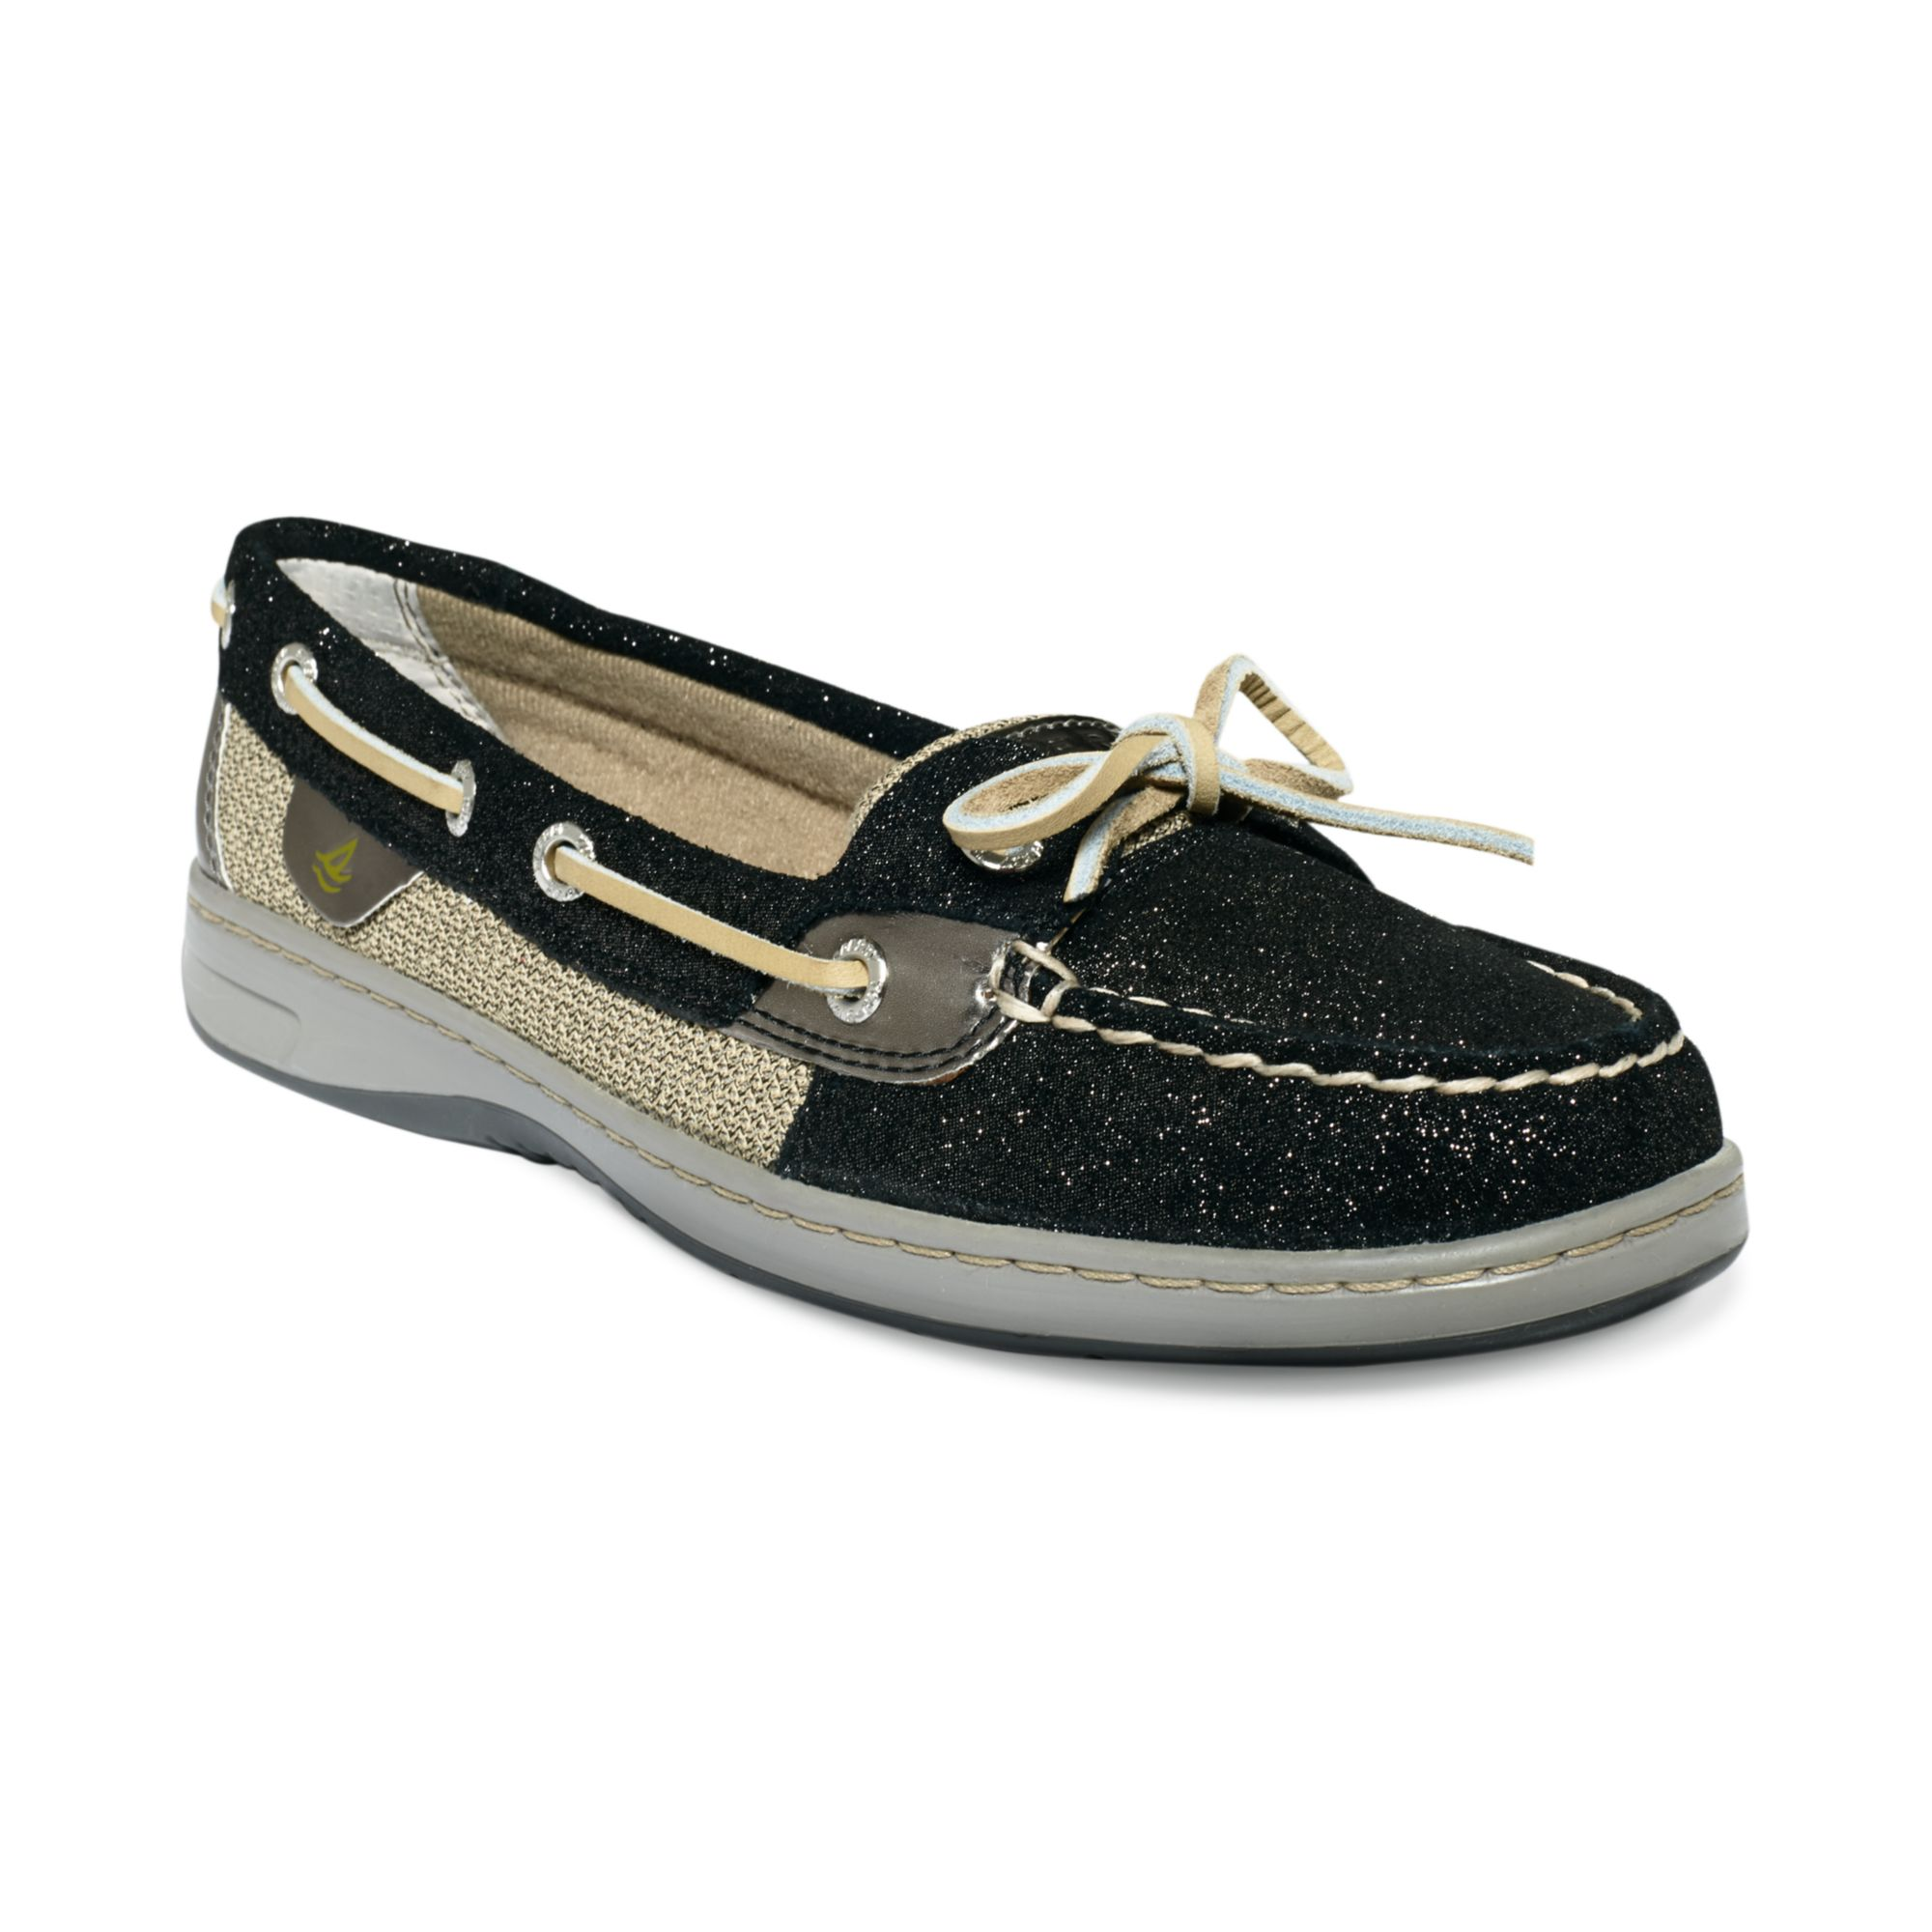 Sparkle Sperry Top Sider Shoes